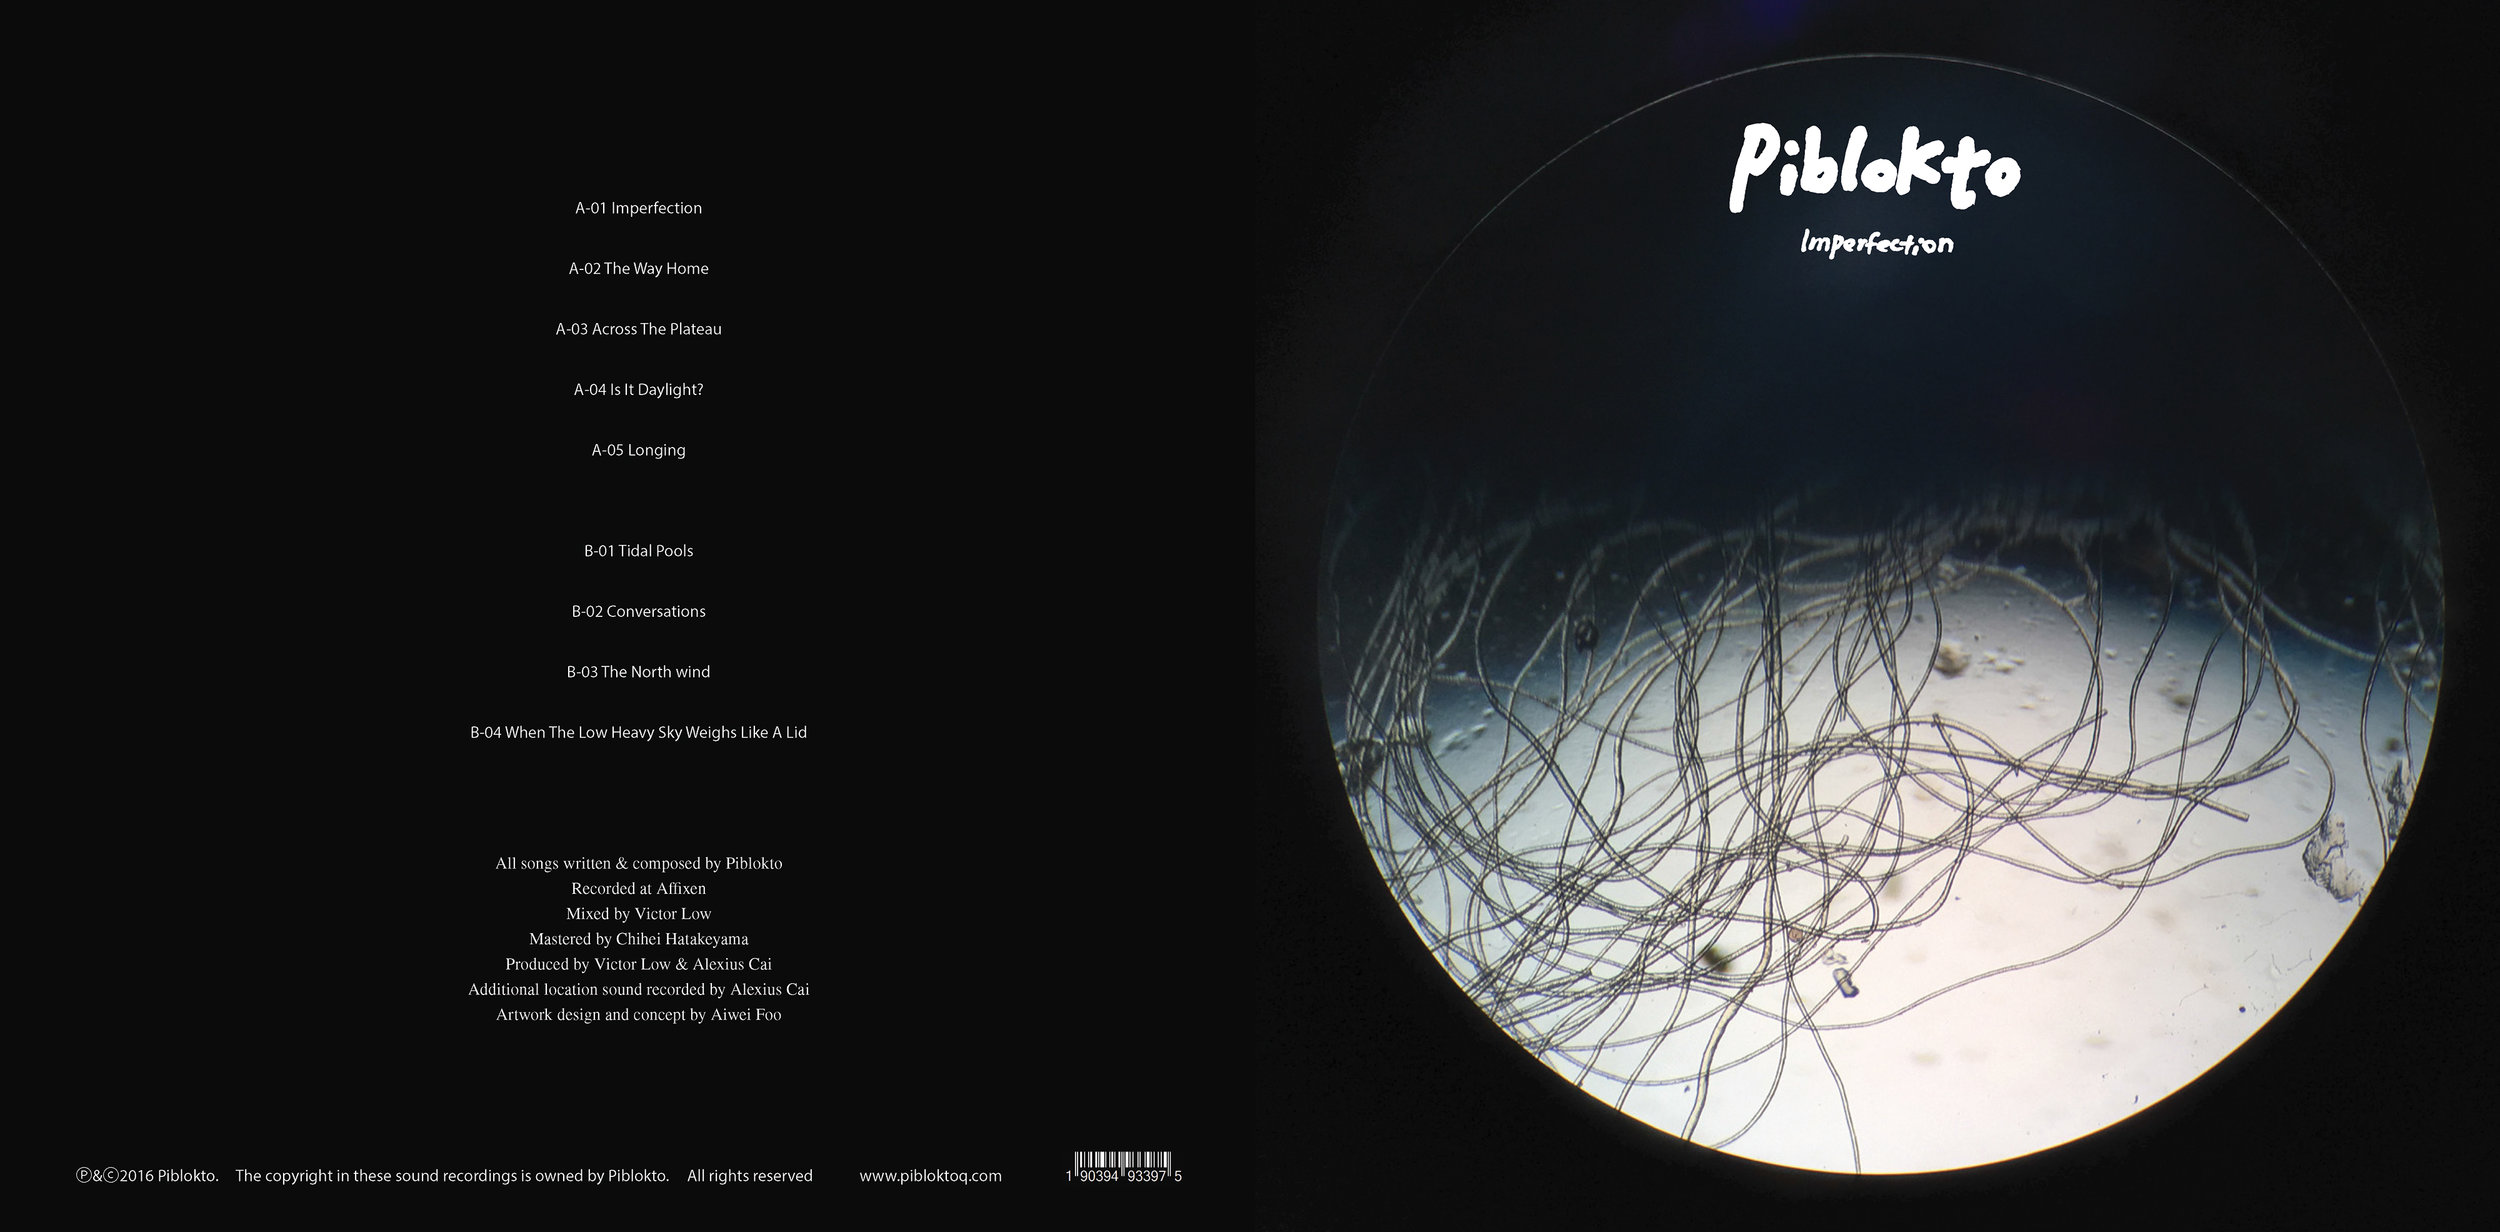 Album art and sleeve design for Singapore-based musician Piblokto.